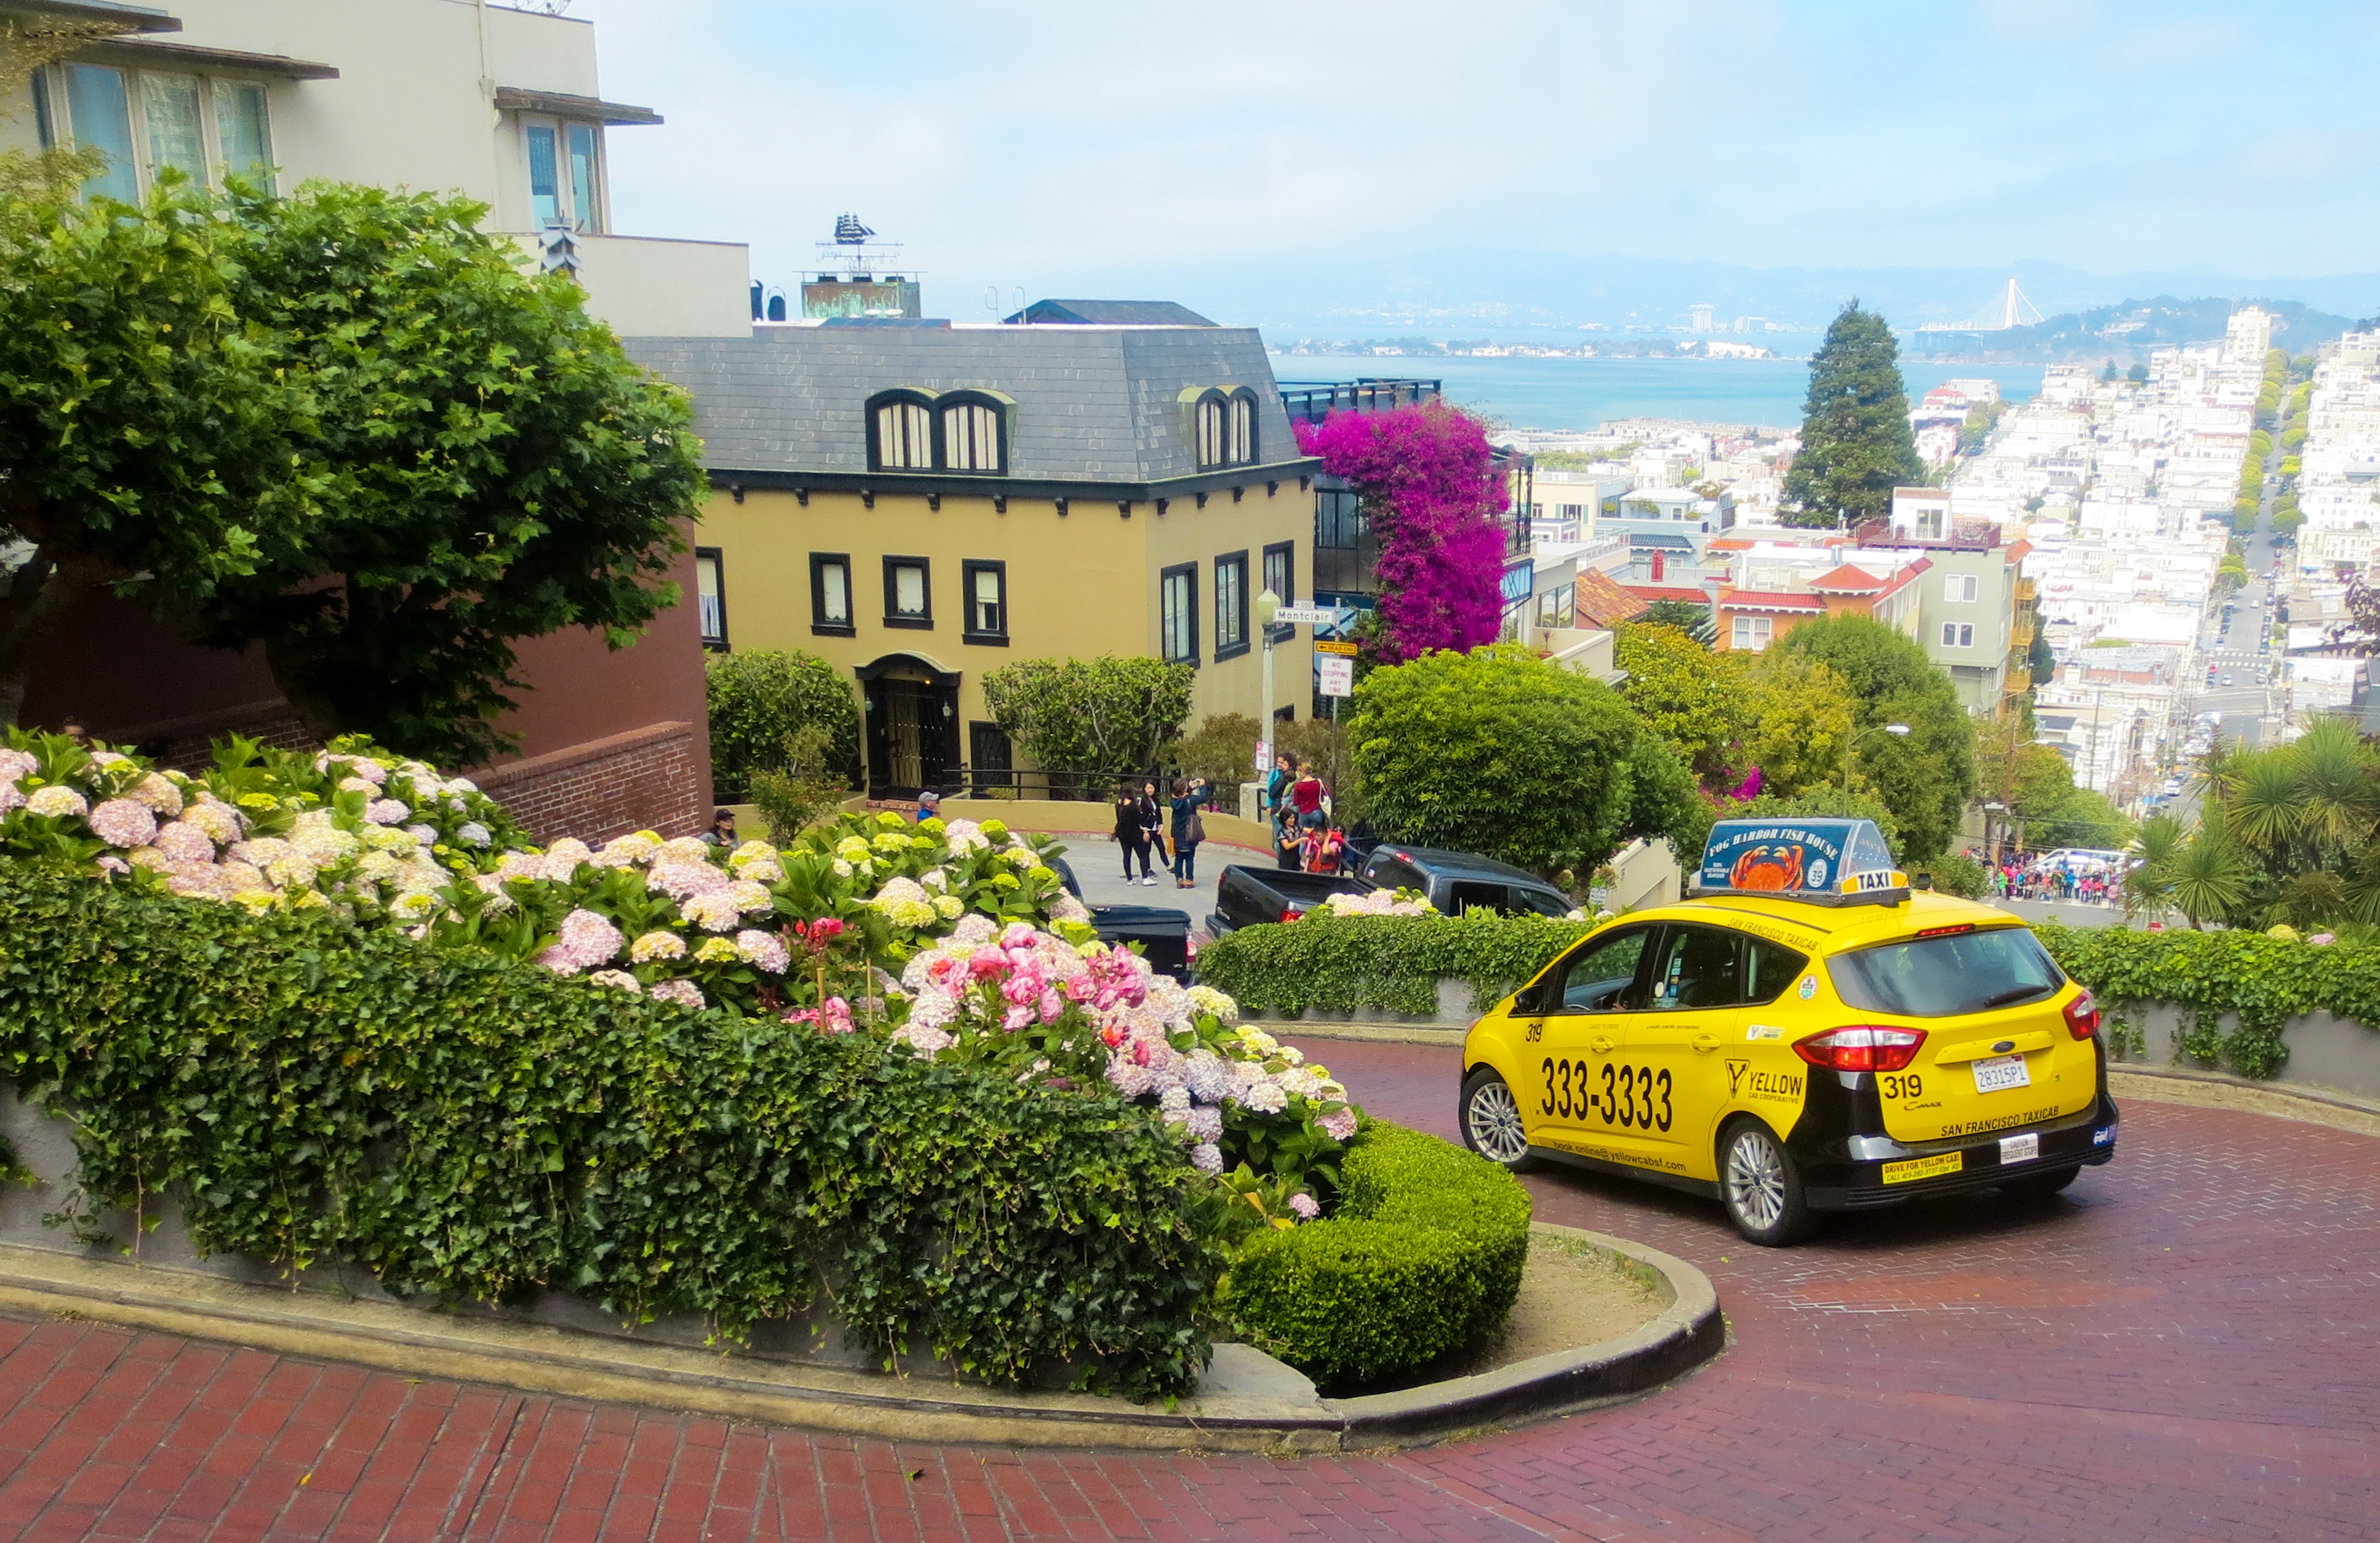 The San Francisco City Pass: Which Attractions to See (and Which to Skip)